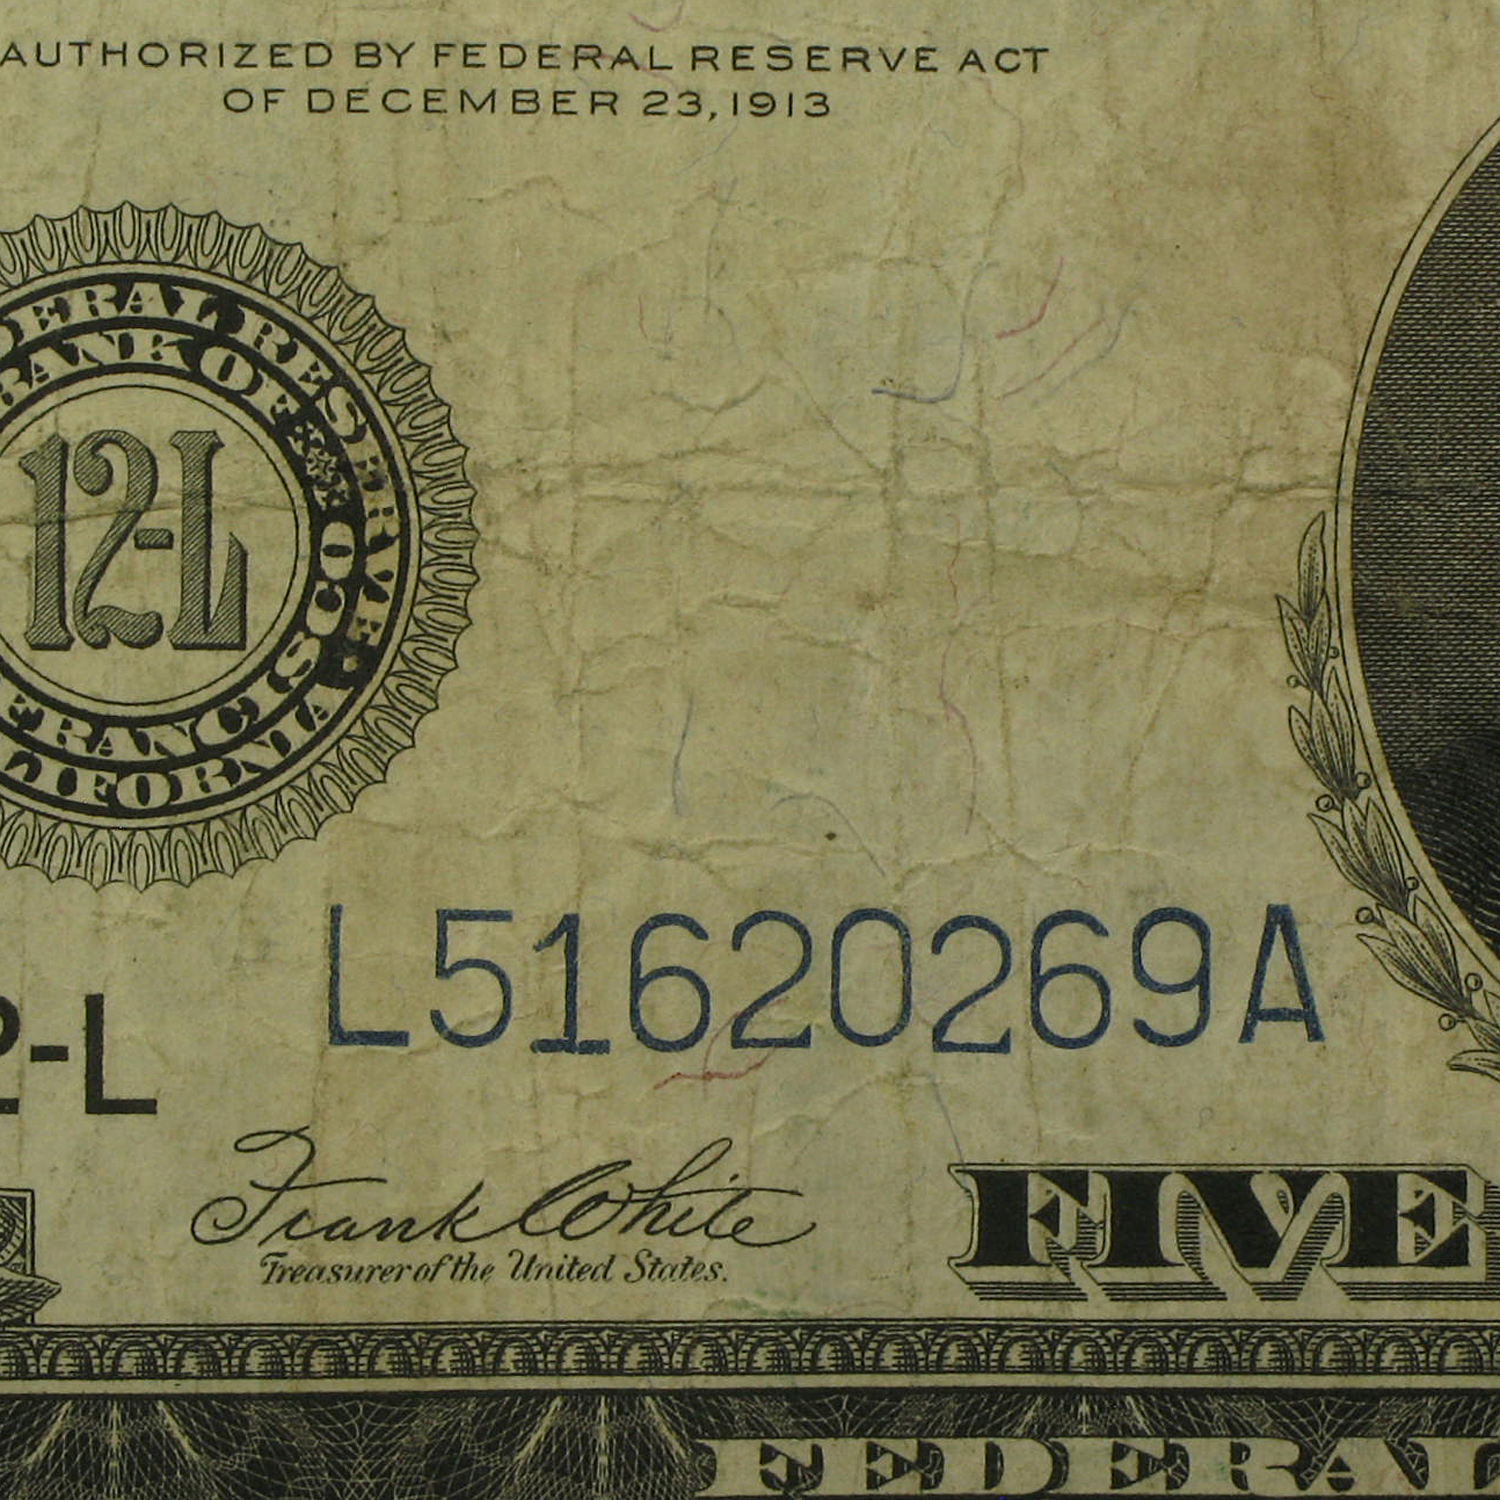 1914 (L-San Francisco) $5.00 FRN VF